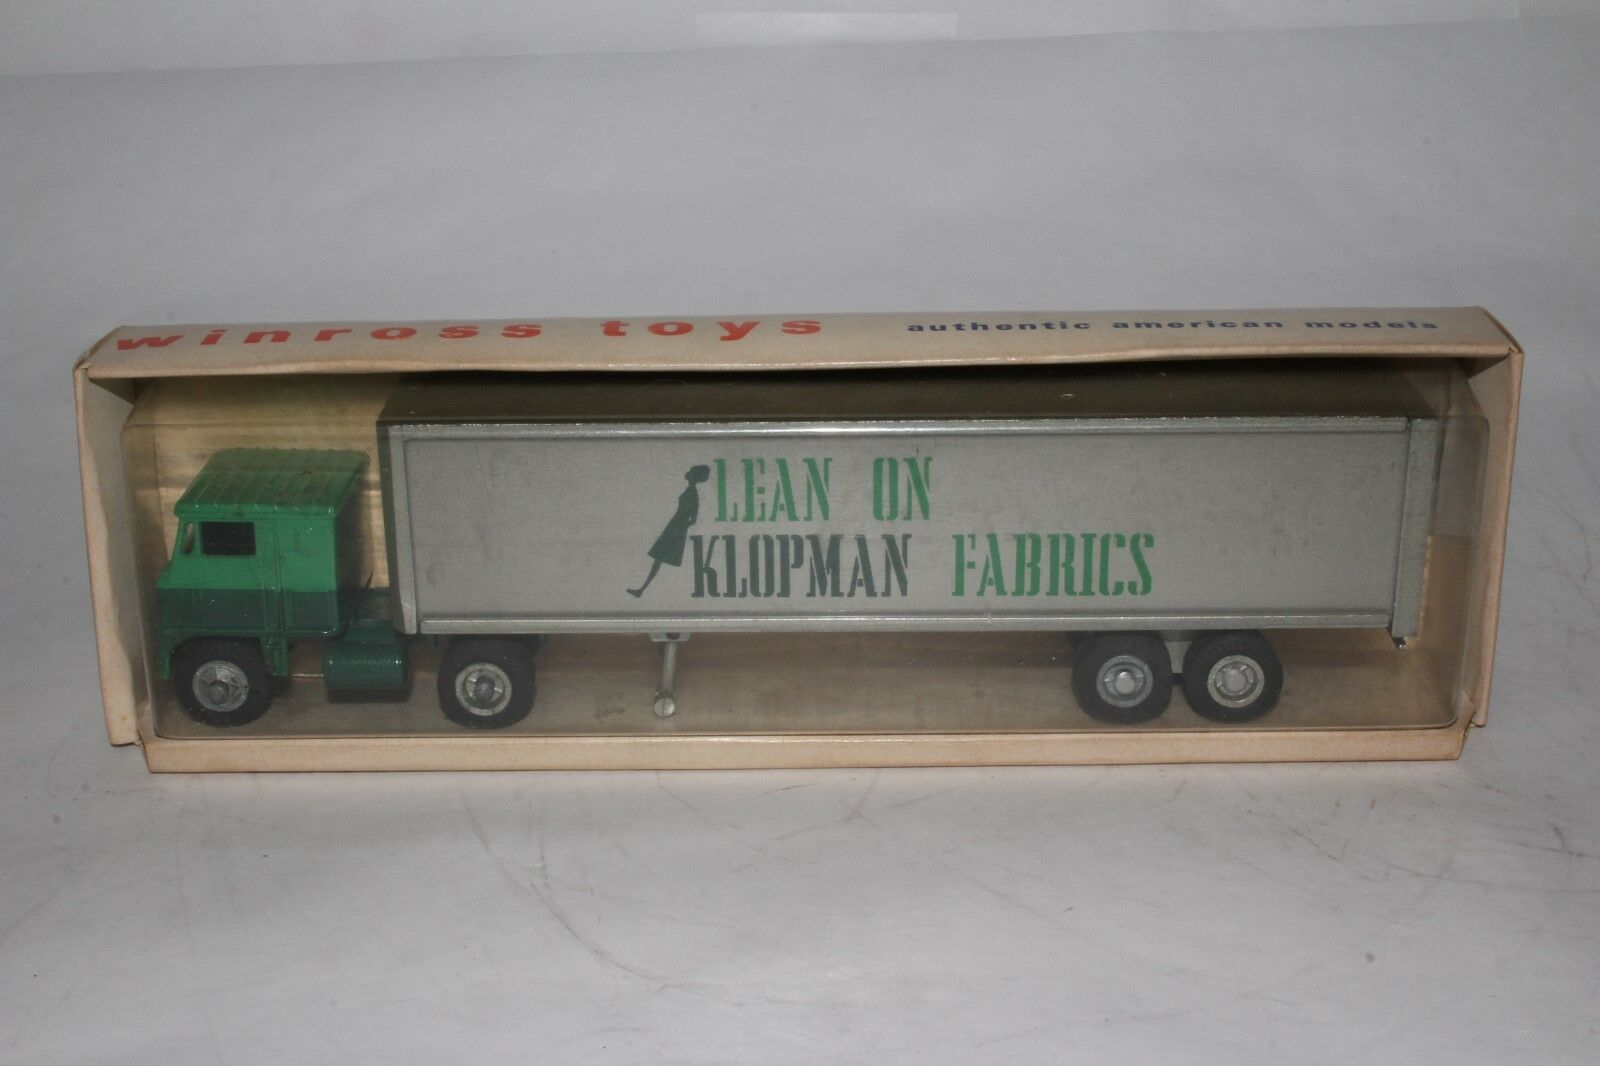 Winross 1970 Klopman Fabrics Semi Truck, Nice with Original Box